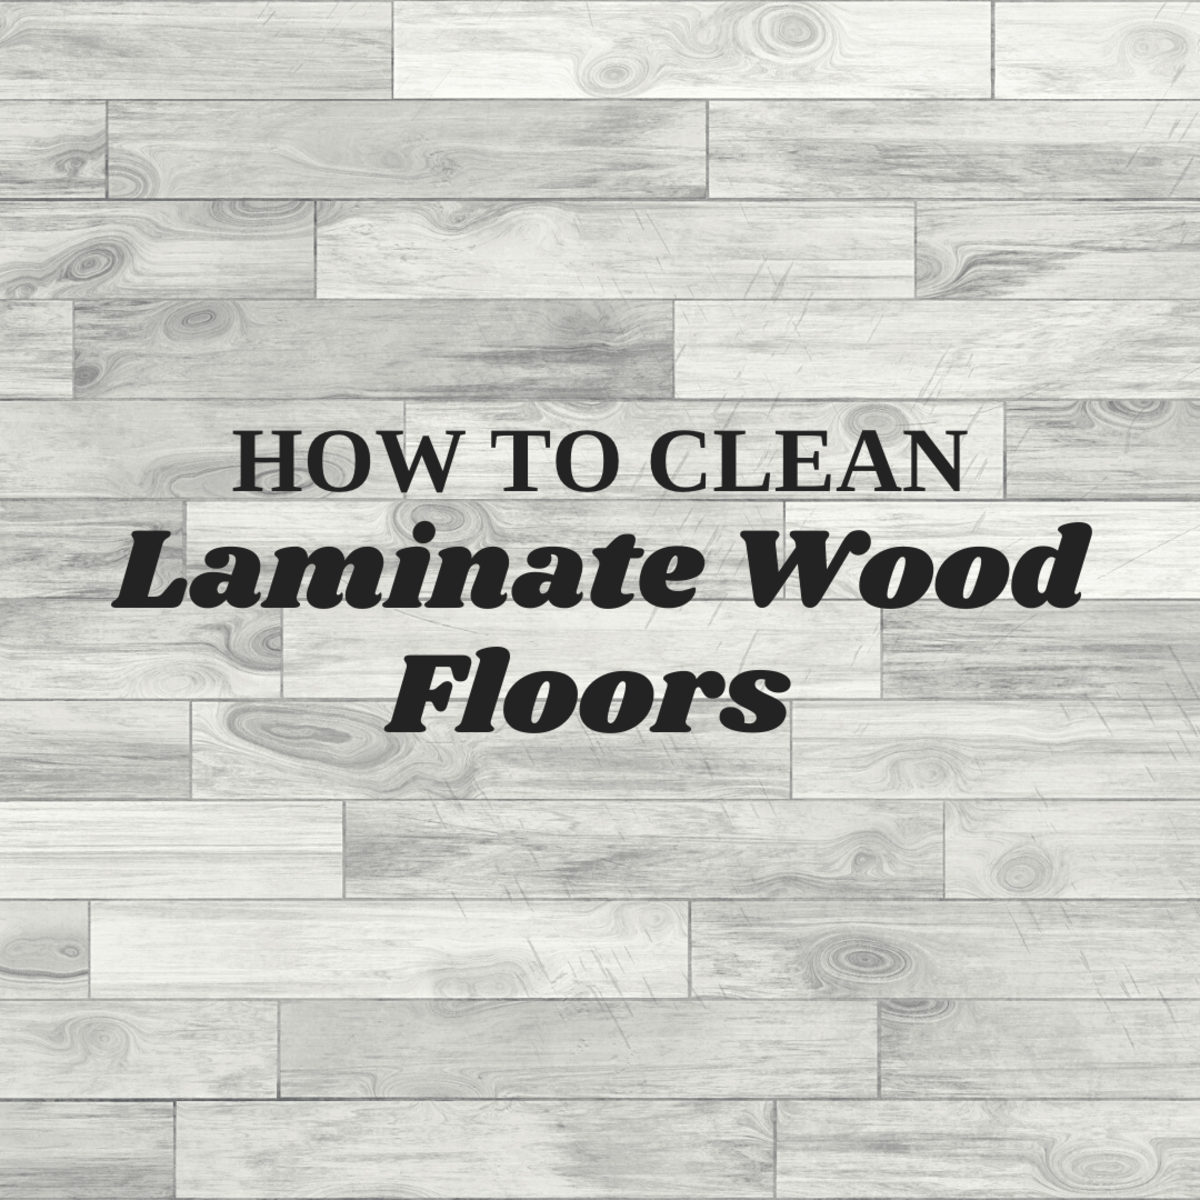 Learn how to clean and maintain laminate wood flooring so that it looks great for years to come!